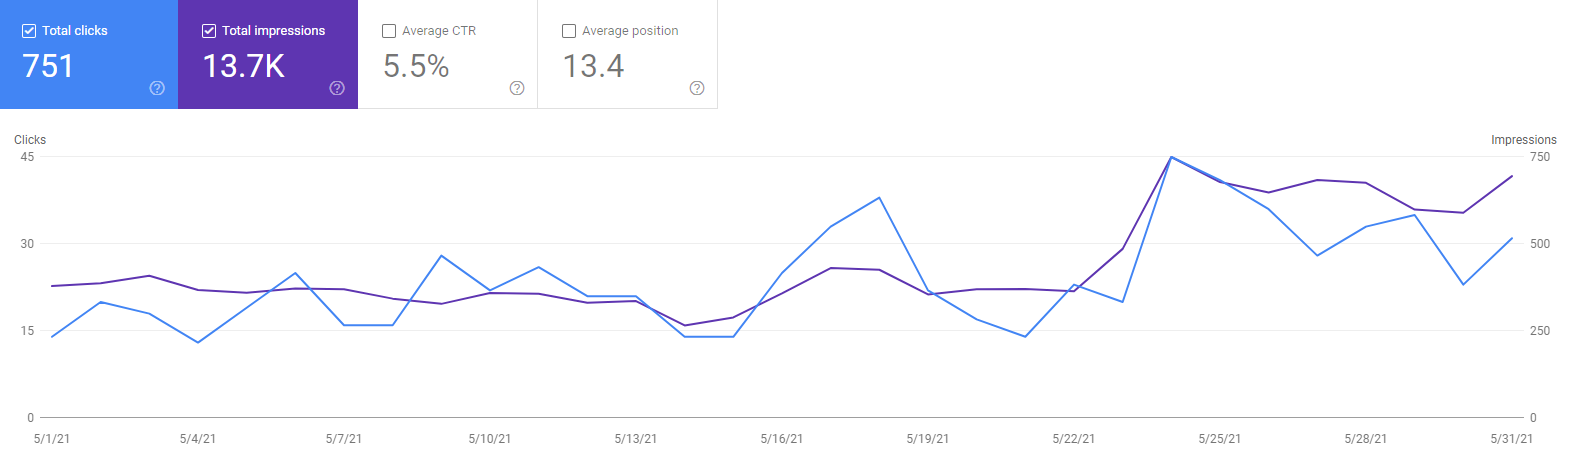 Niche site nr1 stats for May 2021